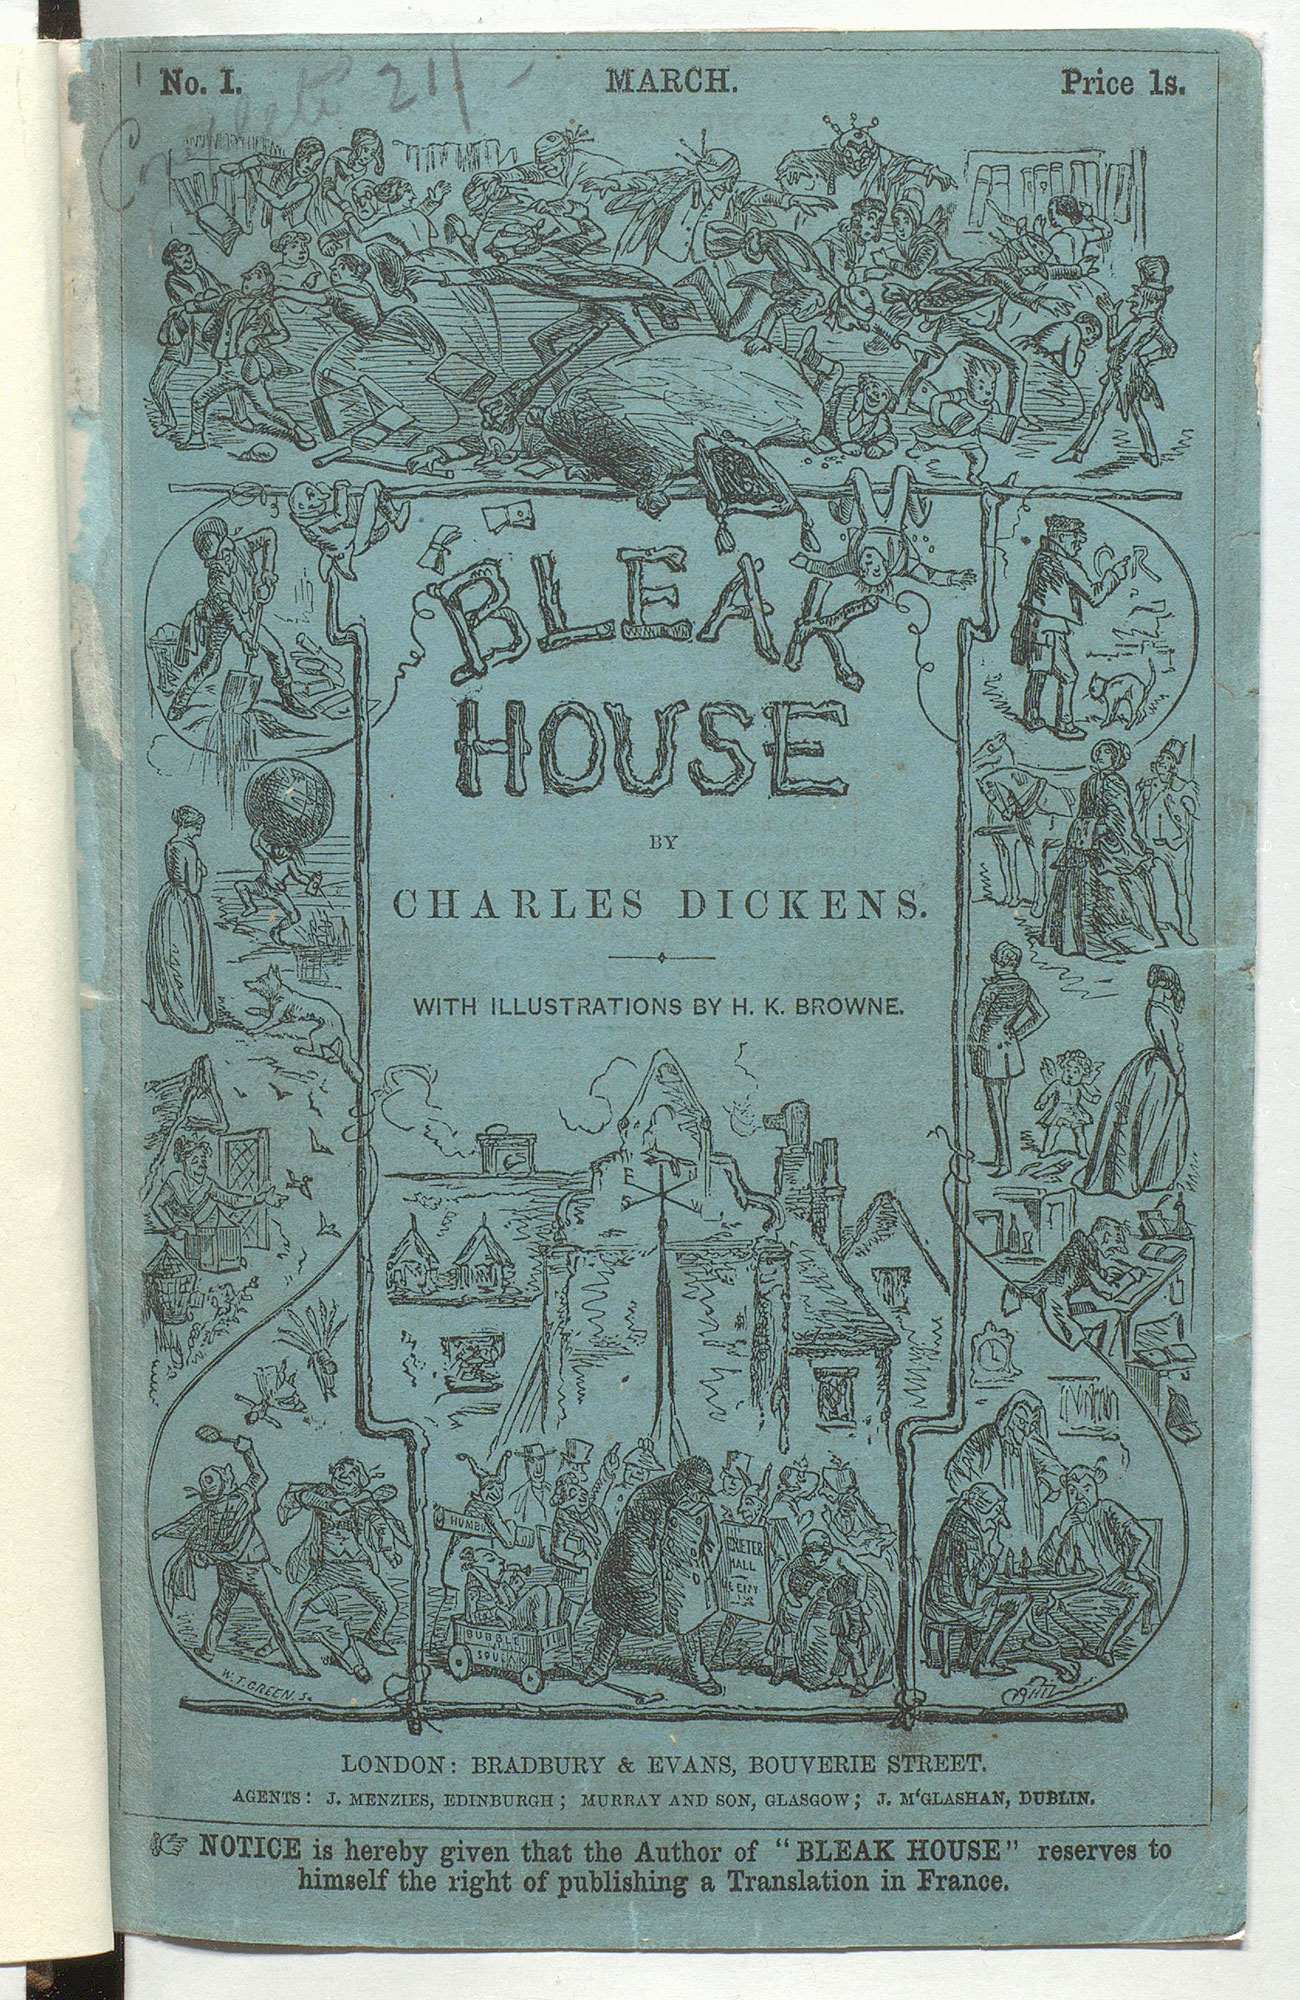 Charles Dickens's Bleak House in its original parts